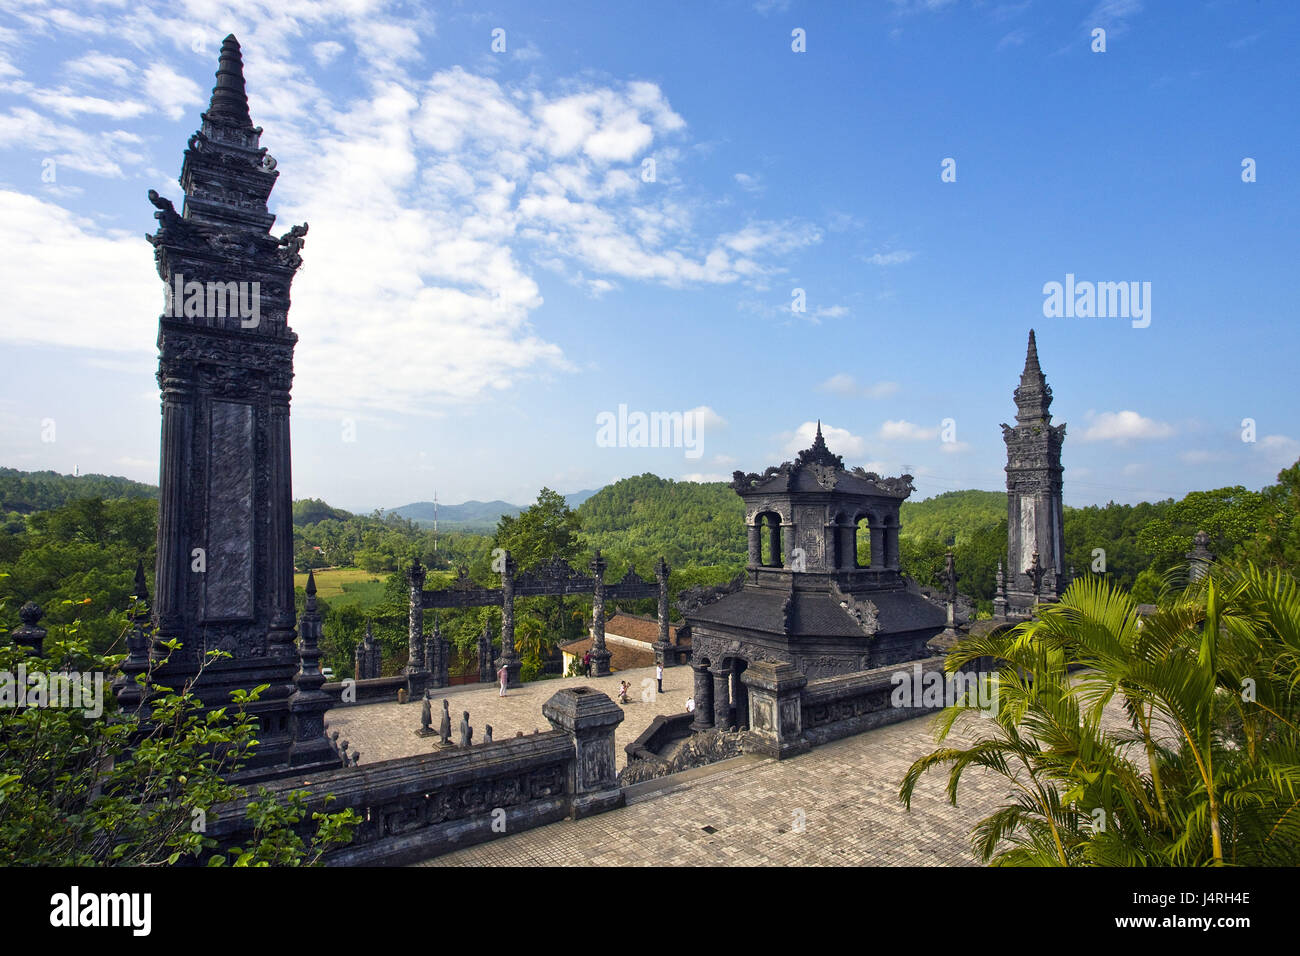 Vietnam, Chau Chu, Khai thing mausoleum Ung Long, - Stock Image